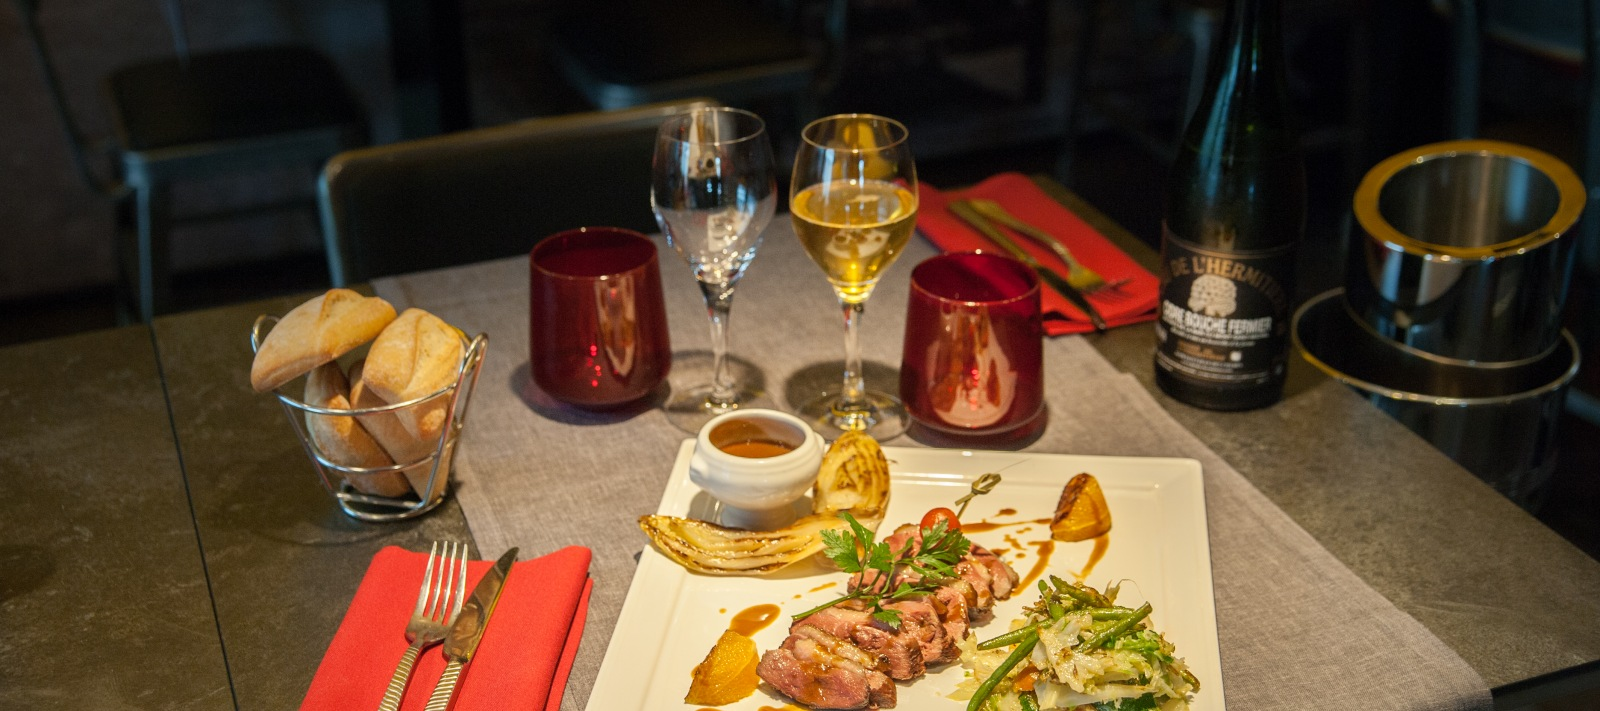 chevalier food and restaurant